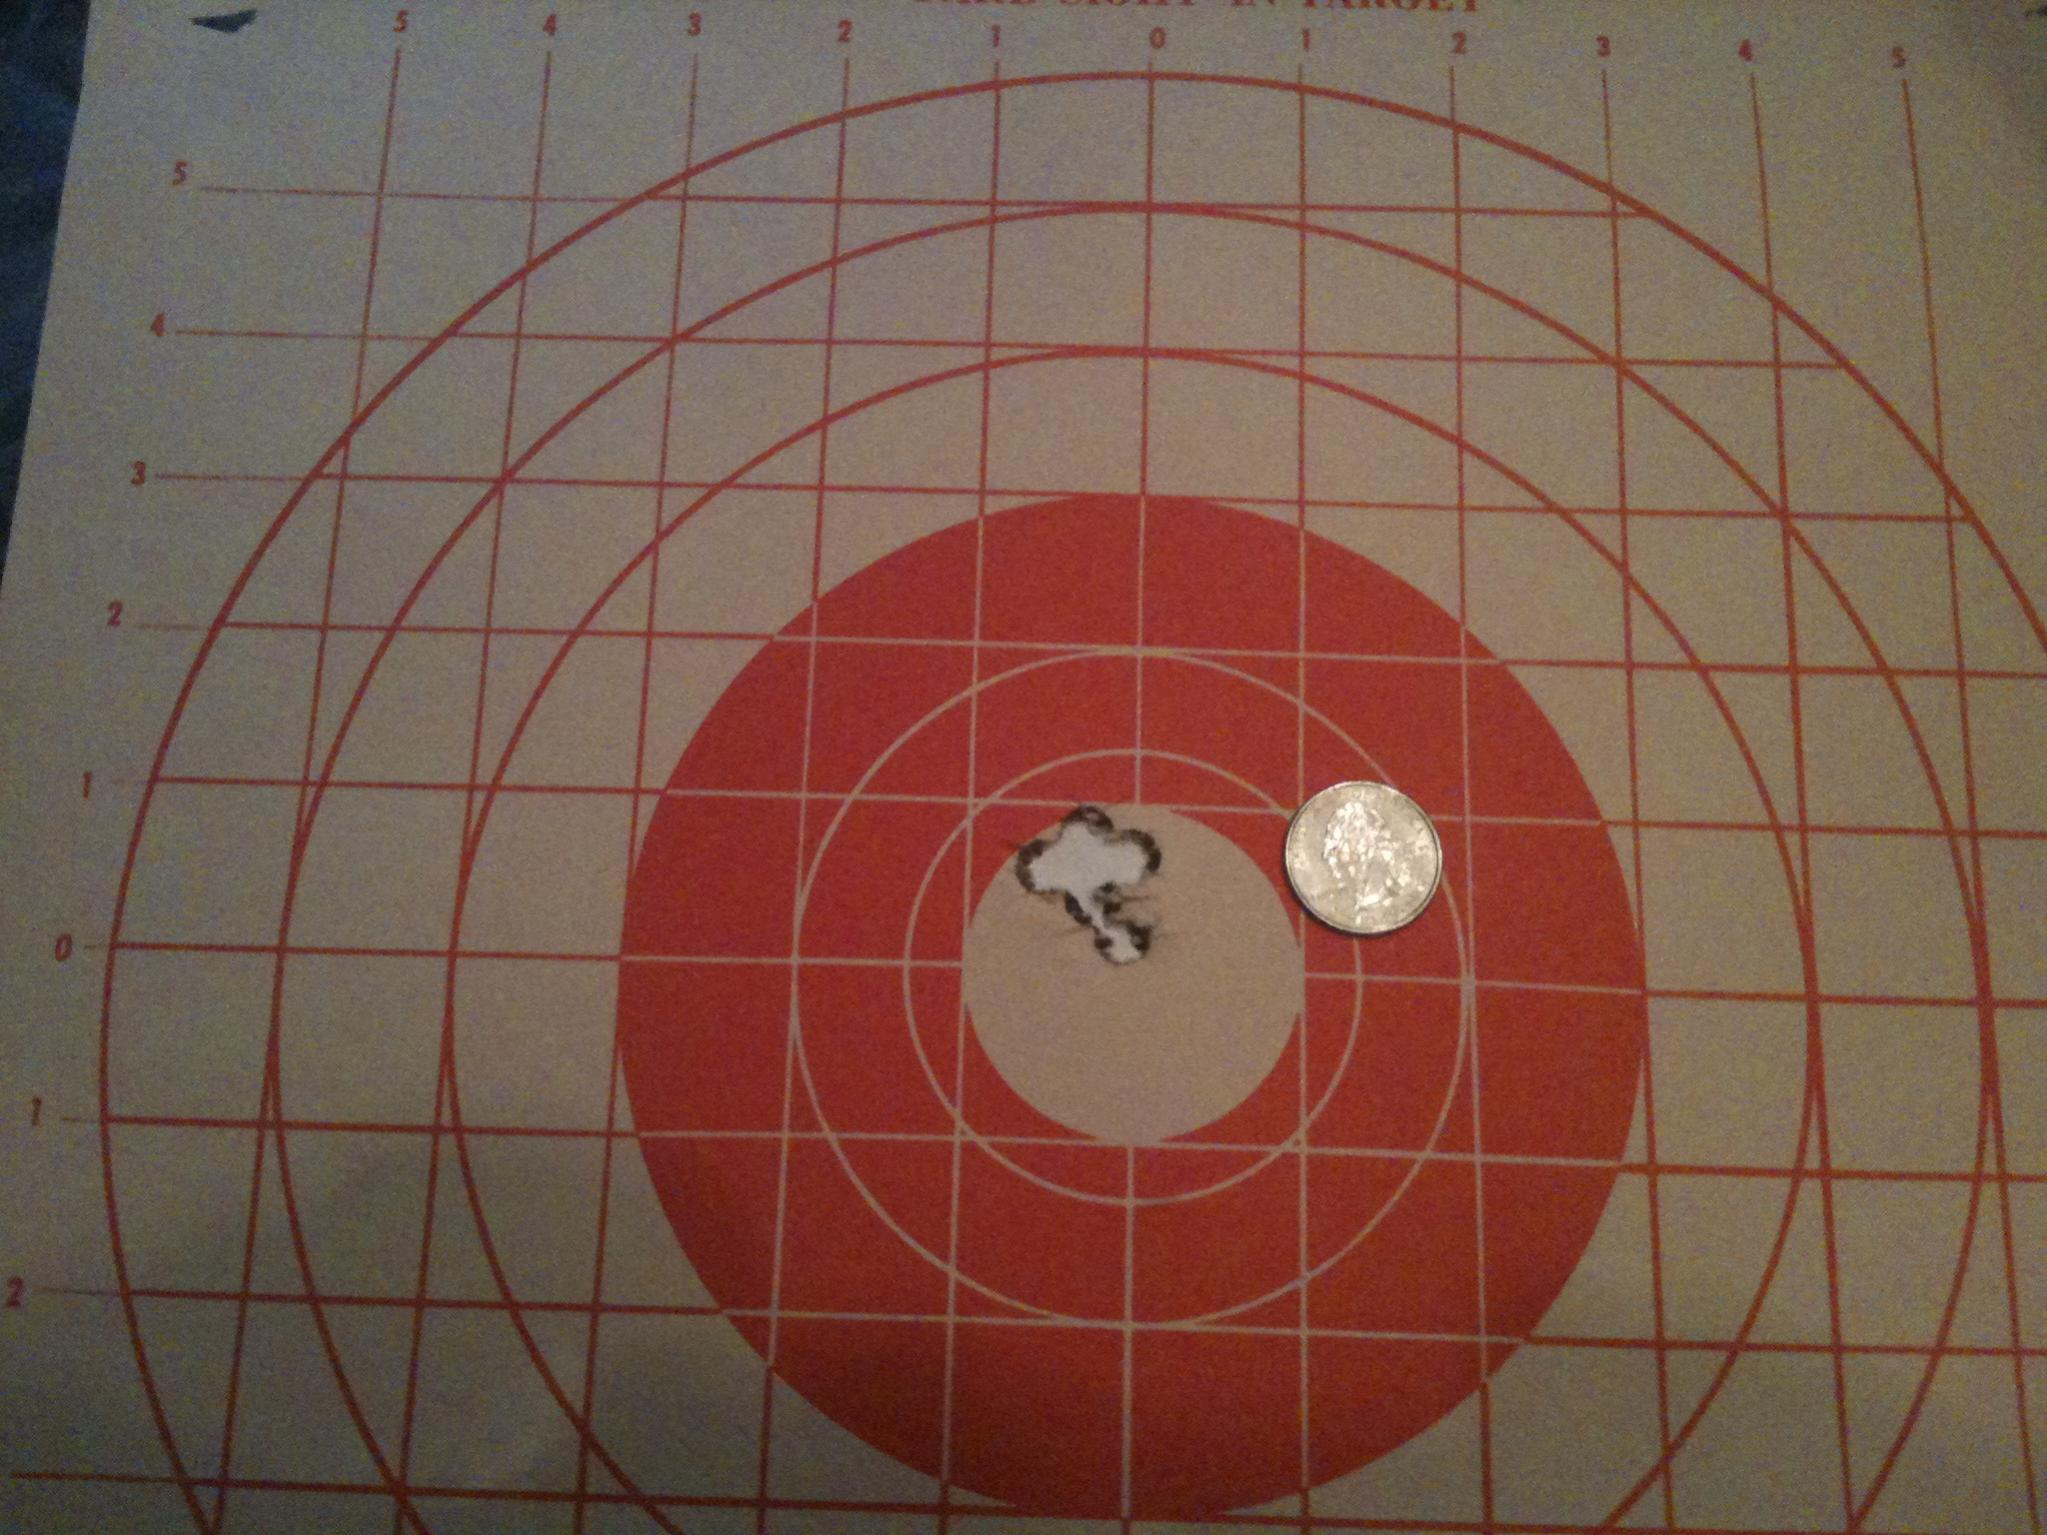 Range time with my new to me Savage 99 300 and my Marlin 336-marlin1.jpg